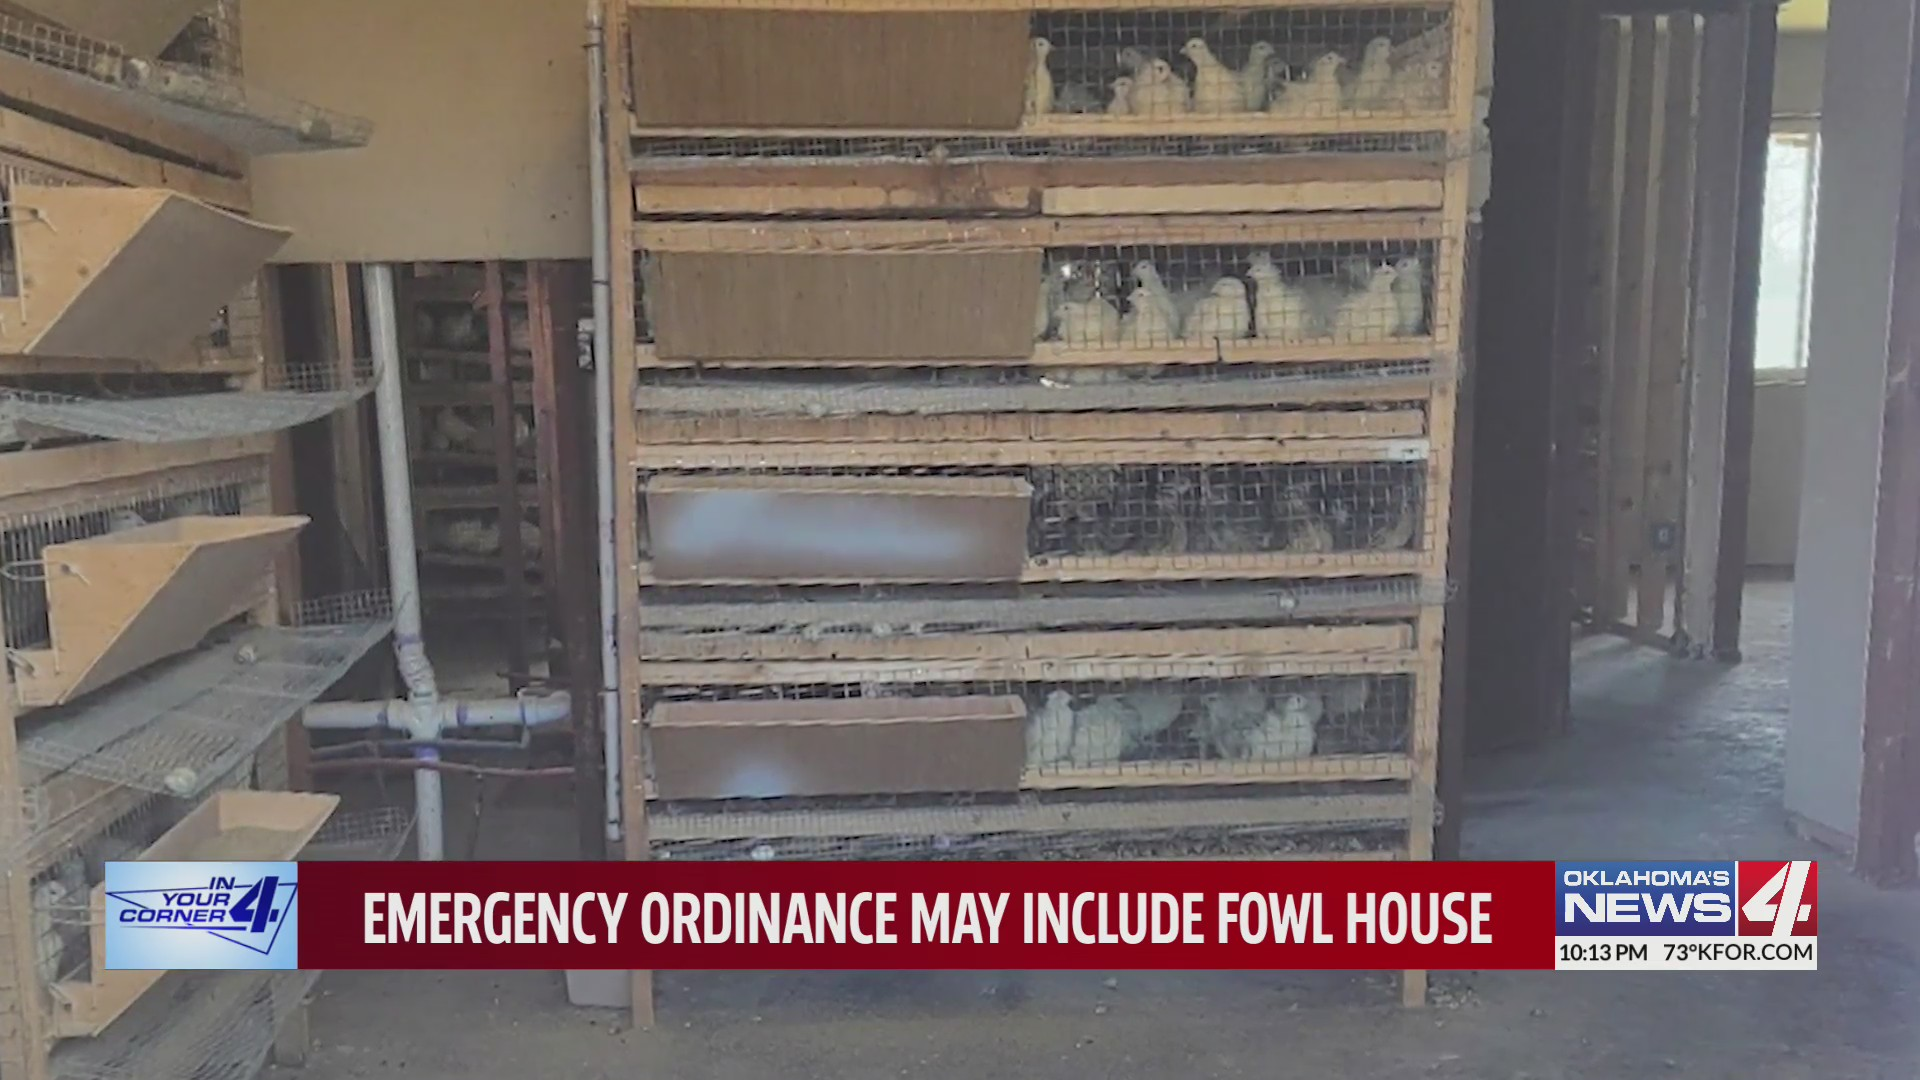 Japanese quail cages stacked in Oklahoma City residence